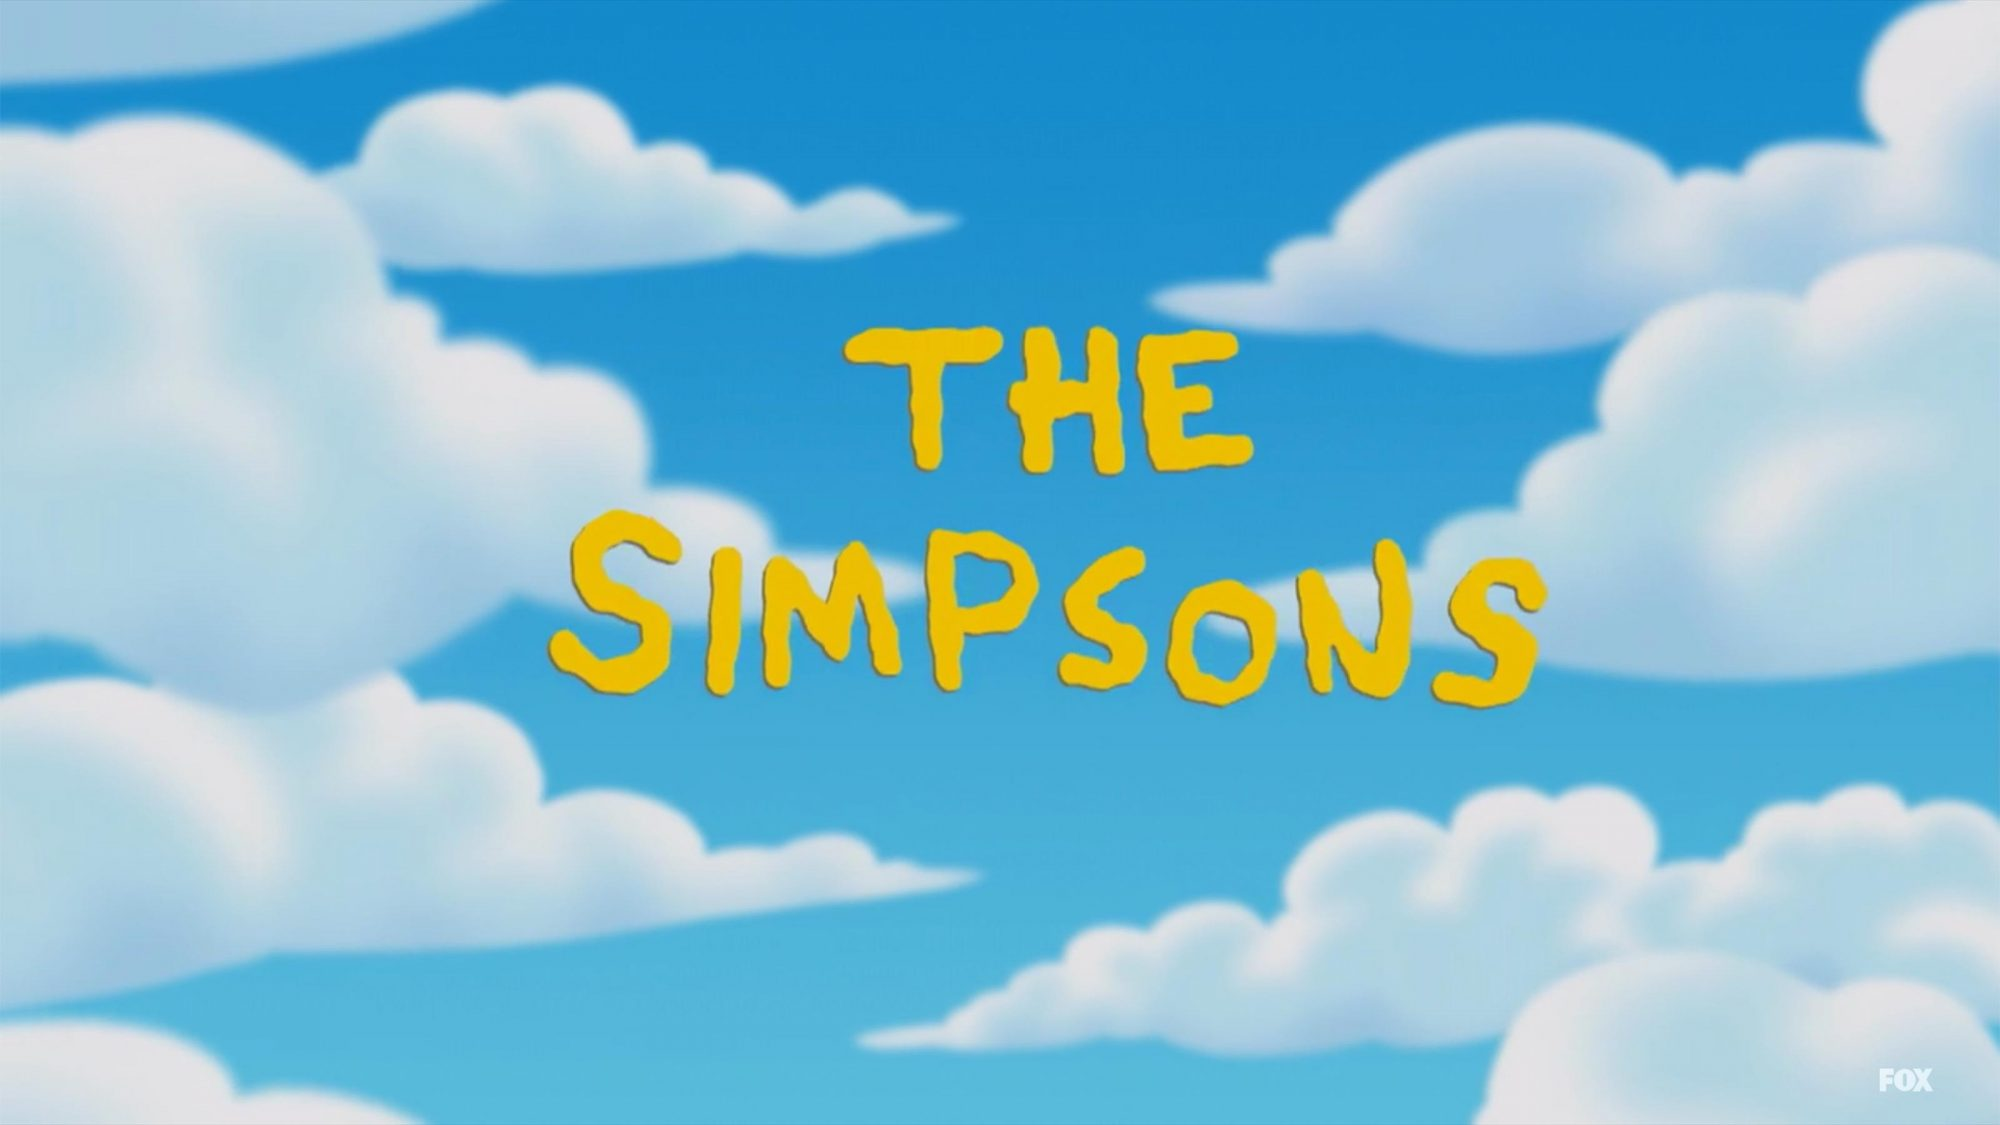 The Simpsons (1989-present)